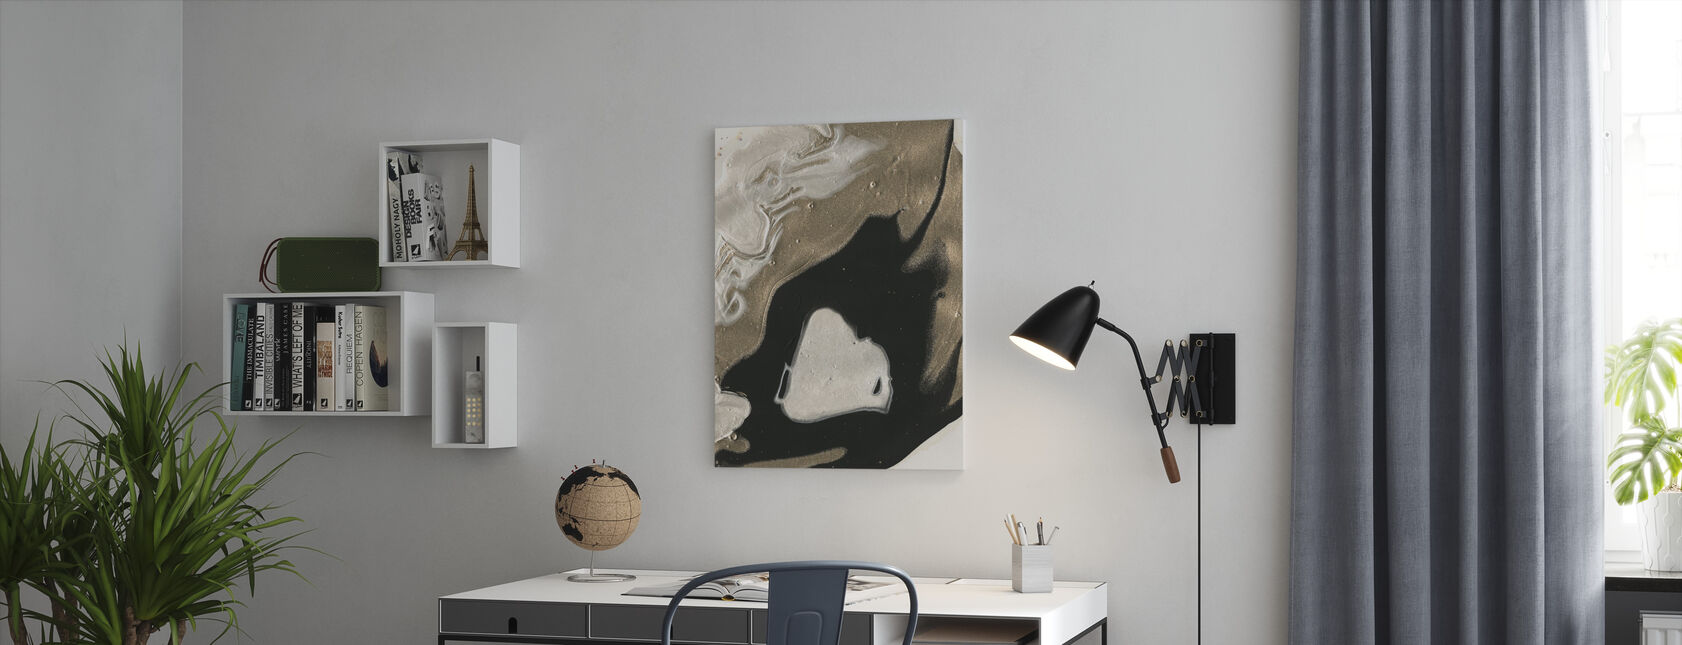 Will o the Wisp - Canvas print - Office